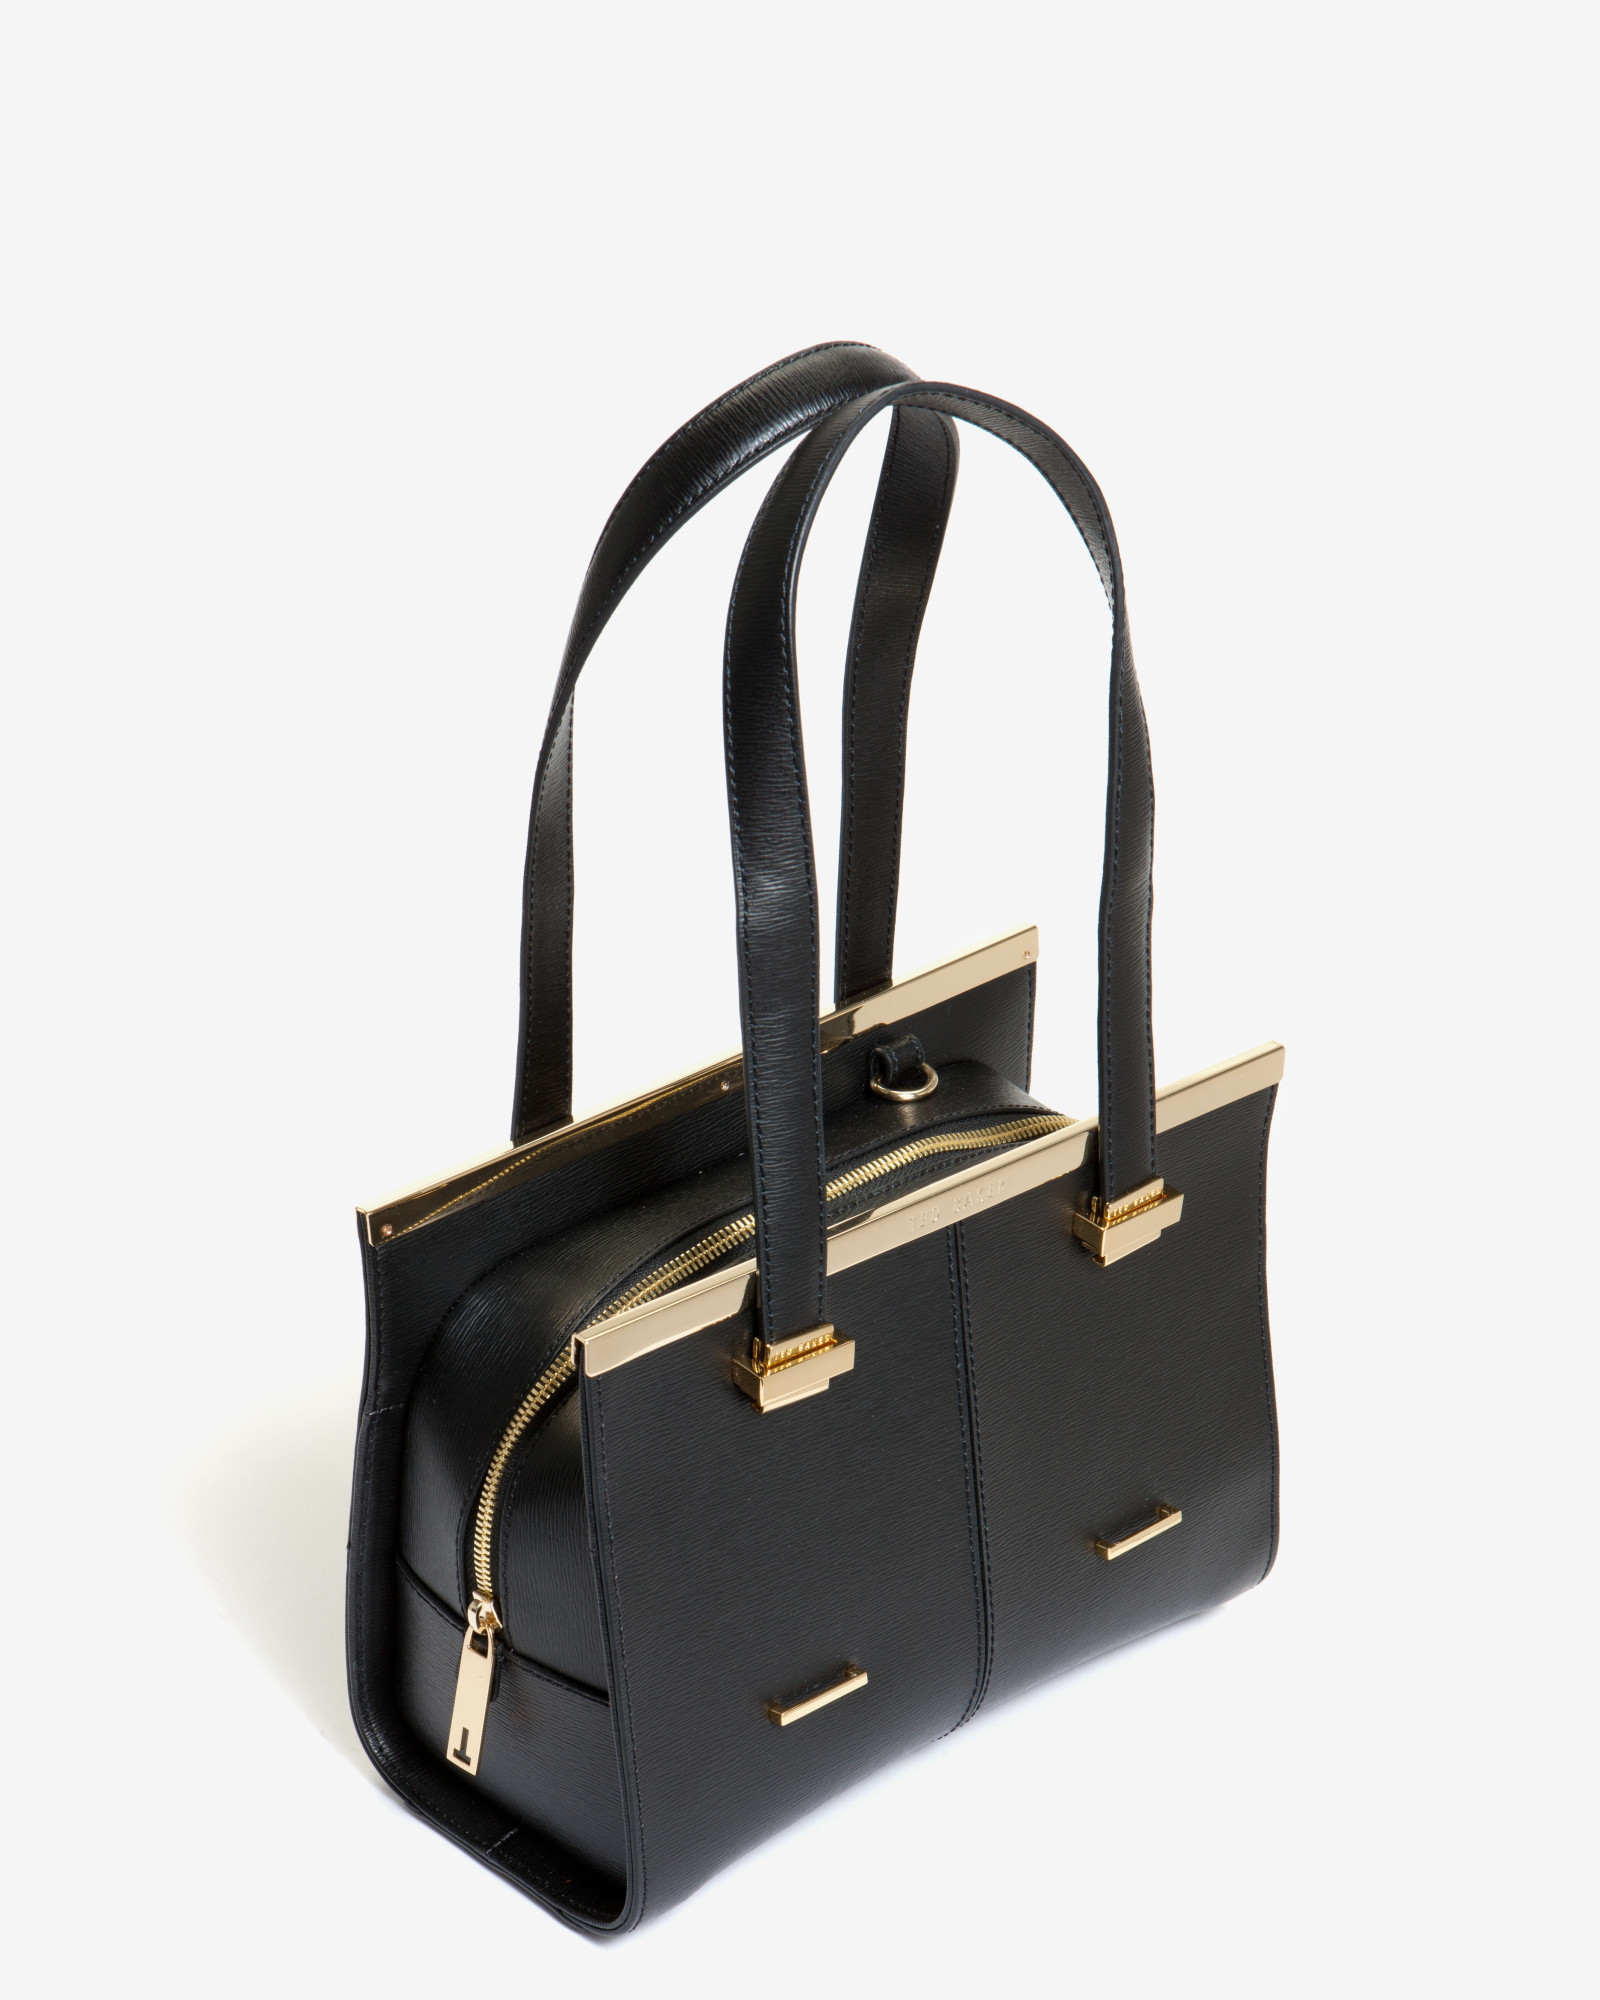 Ted baker Small Crosshatch Leather Tote Bag in Black | Lyst